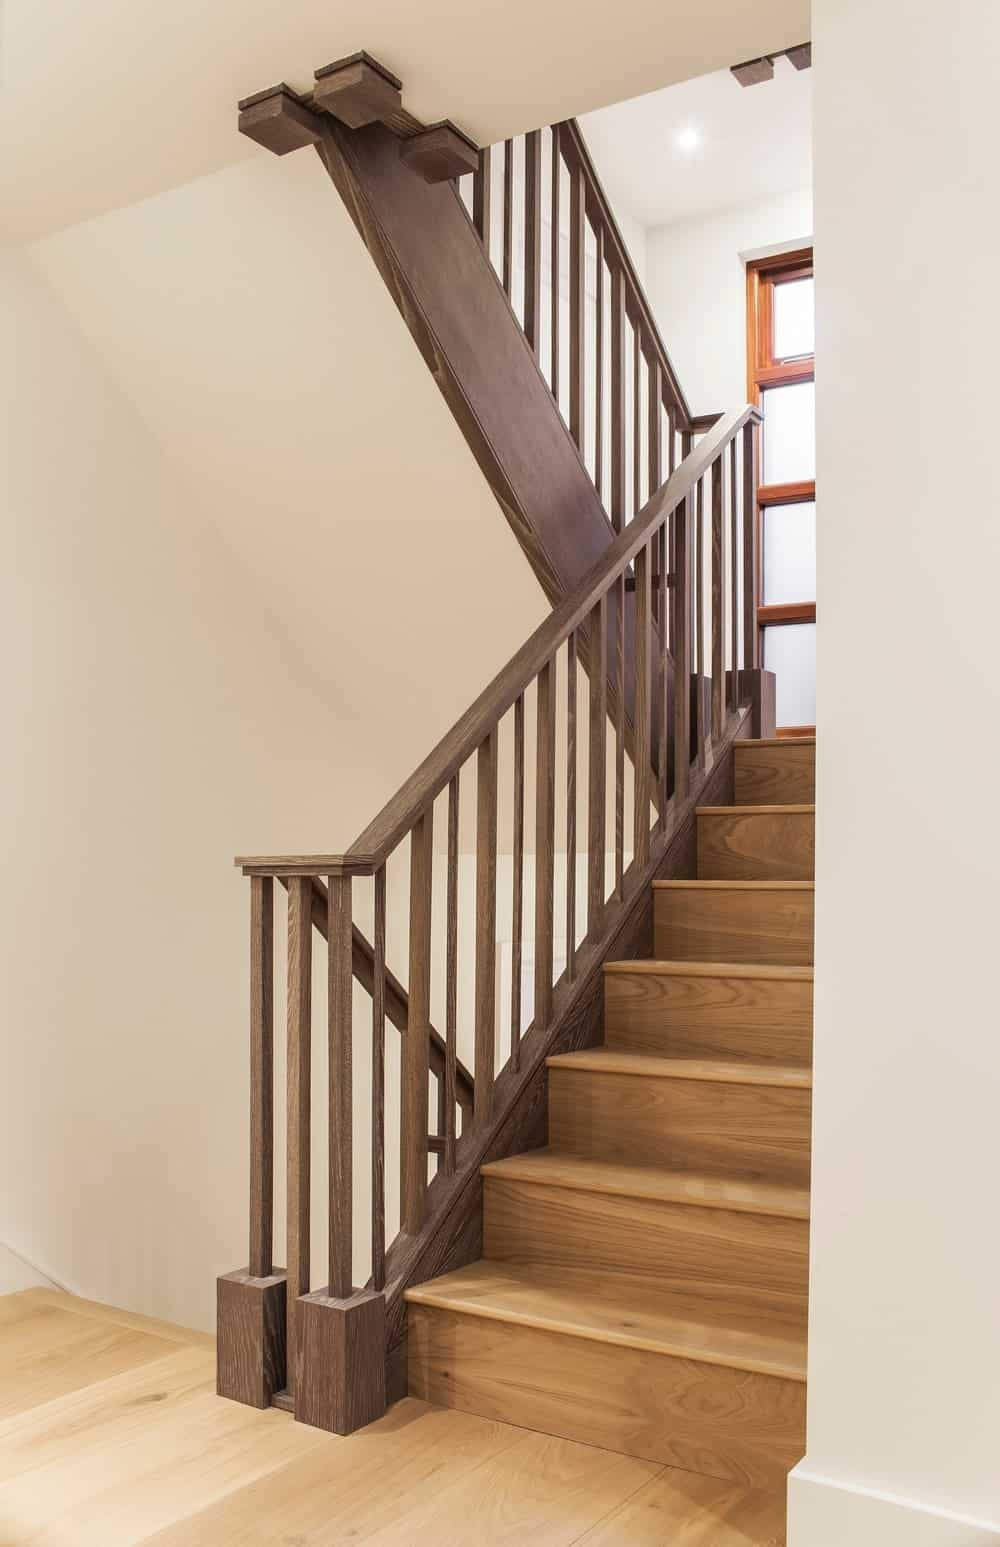 Staircase with hardwood flooring and wooden rails. Photo credit: Photography / Styling : Rick Mccullagh / LLI Design